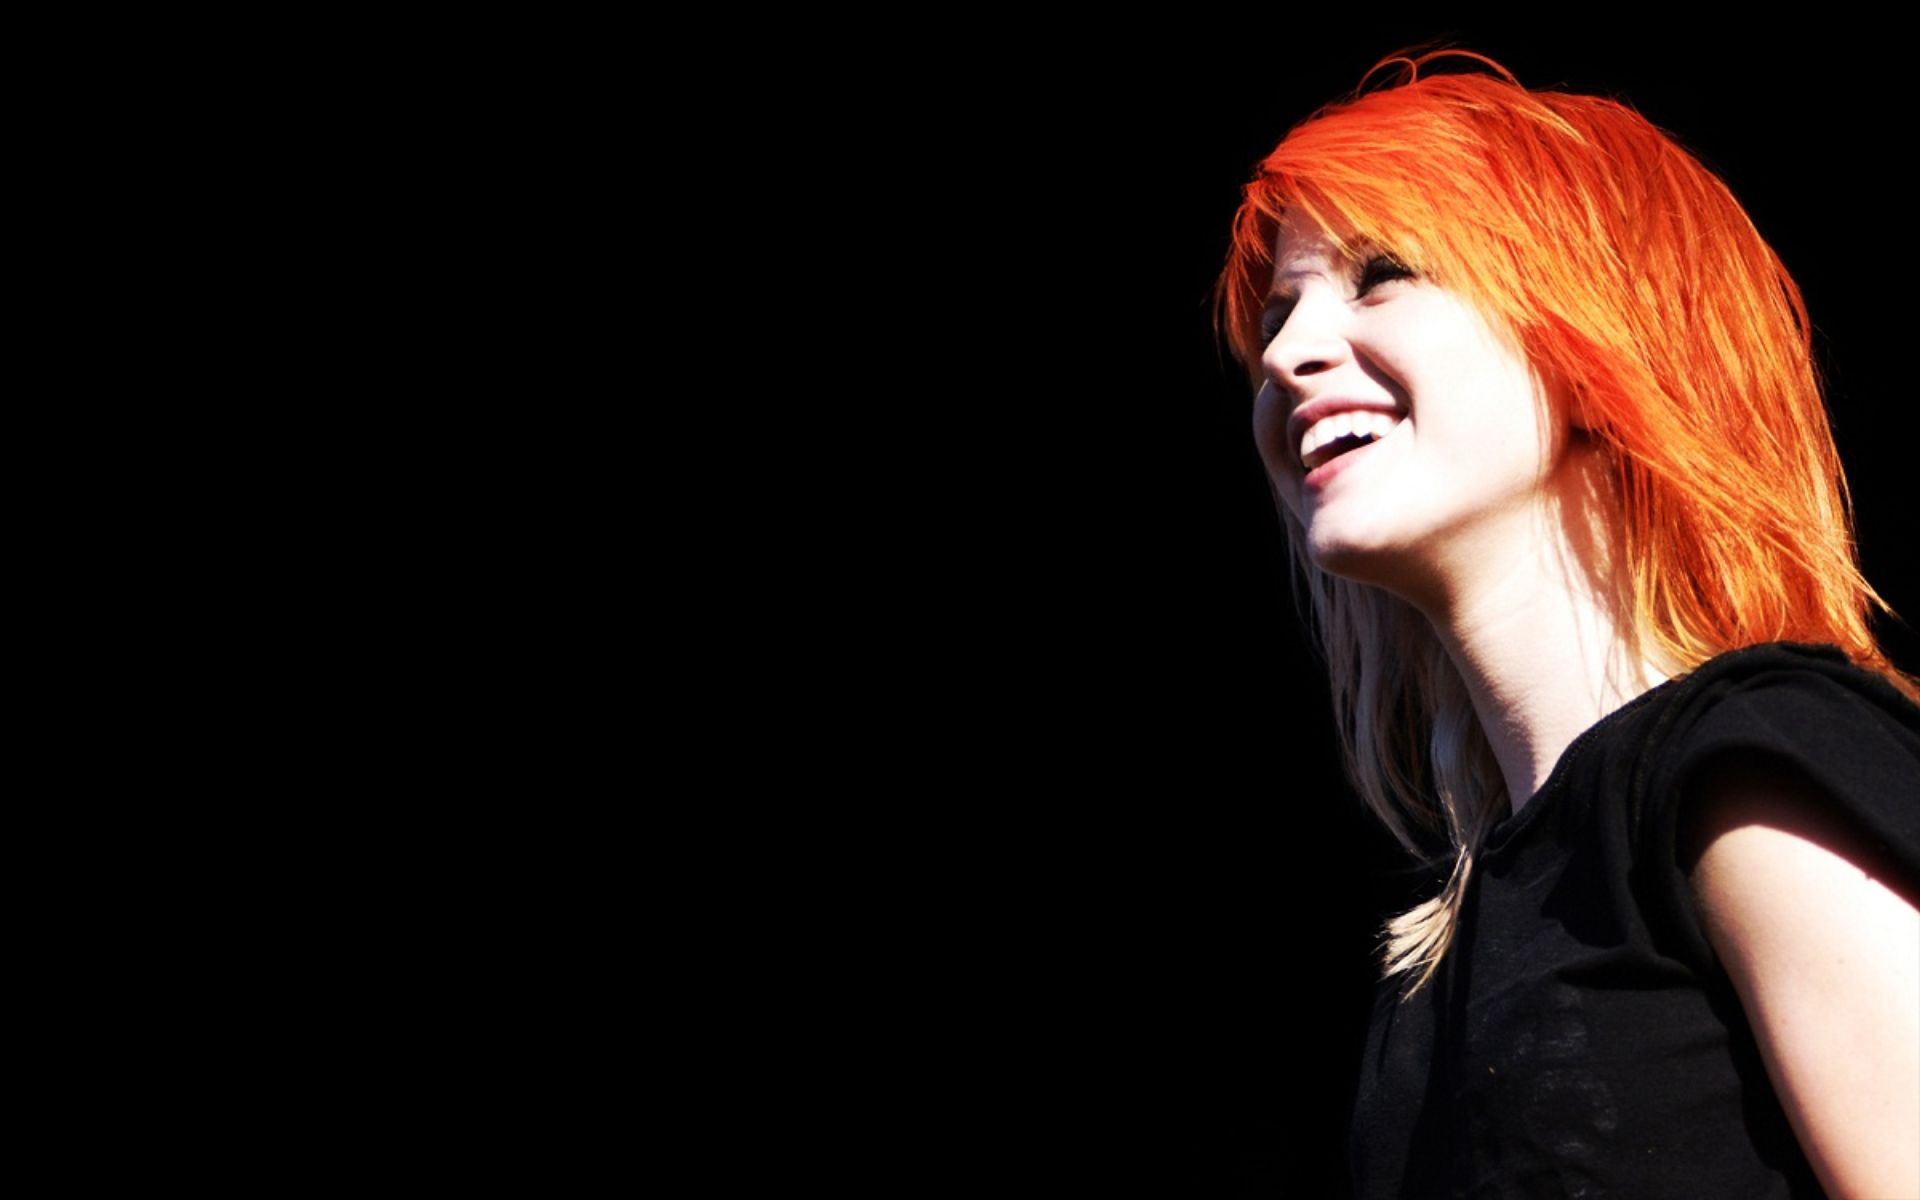 hayley williams free hd - photo #4